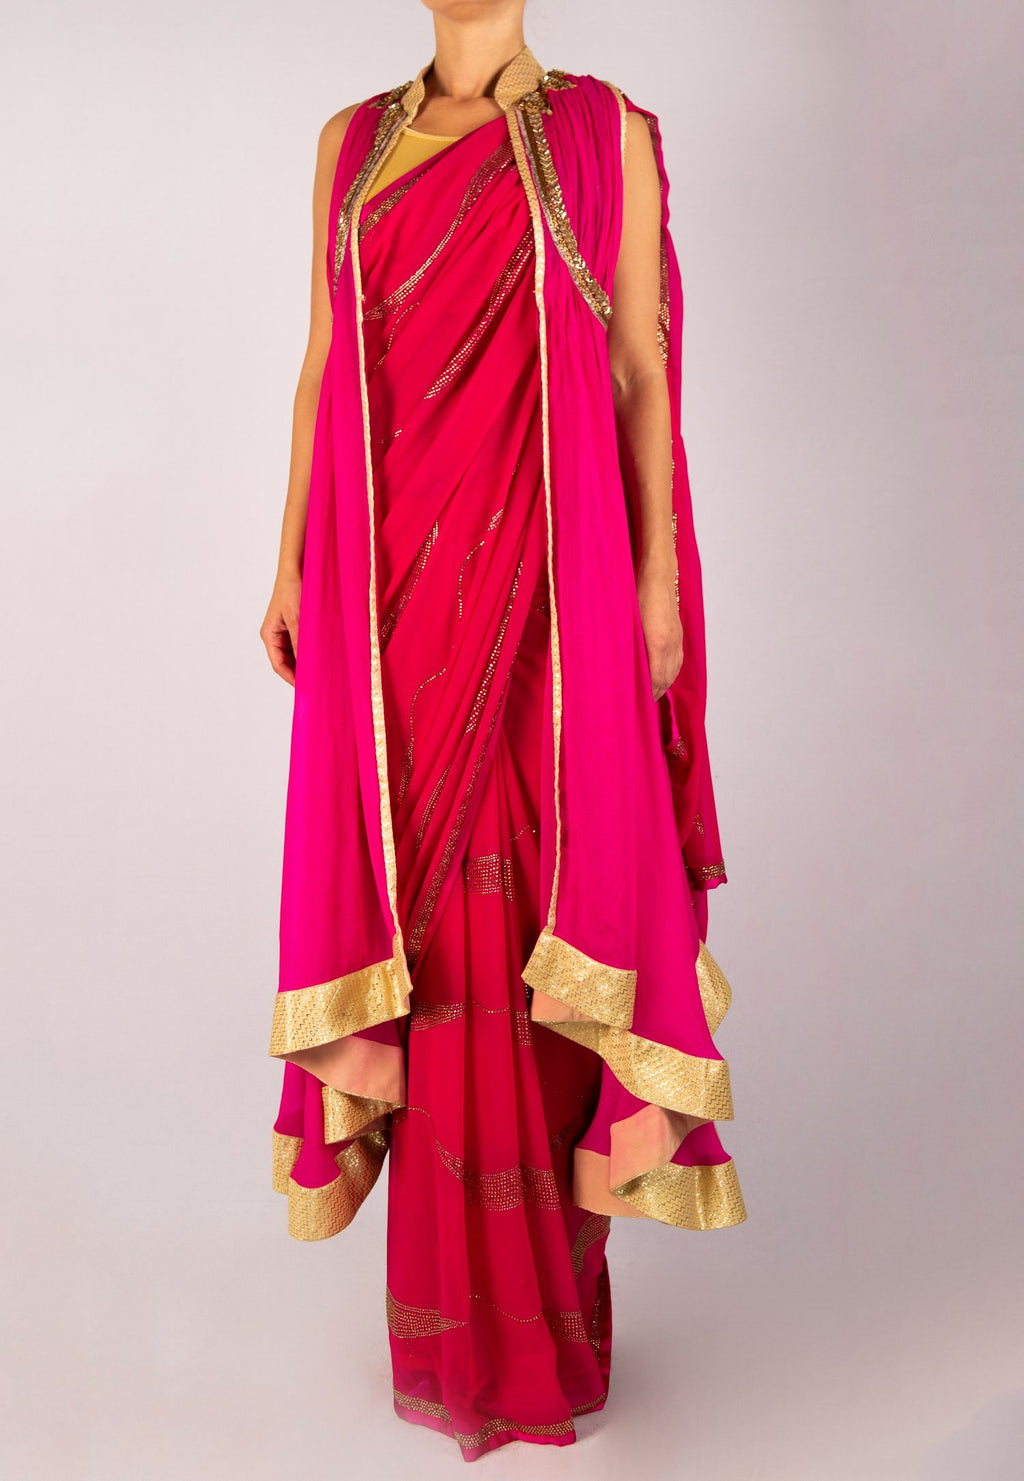 PINK SAREE WITH STYLISH AND ORNATE PINK CHIFFON JACKET WITH GOLD SWAROVSKI DETAIL